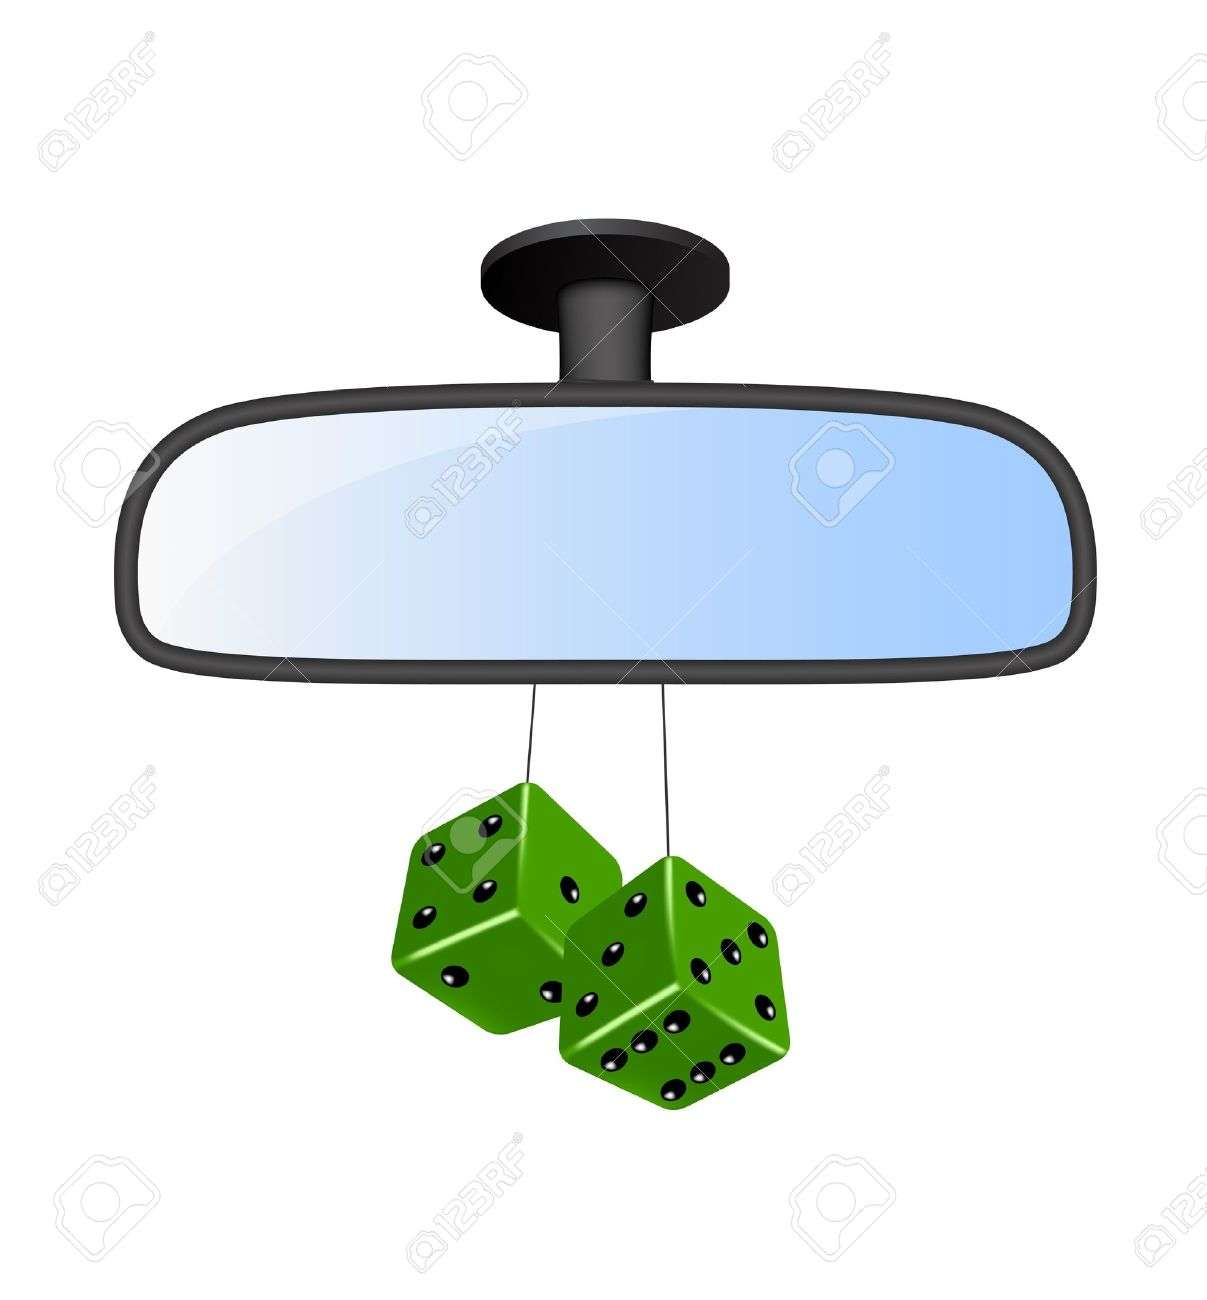 Rearview clipart #9